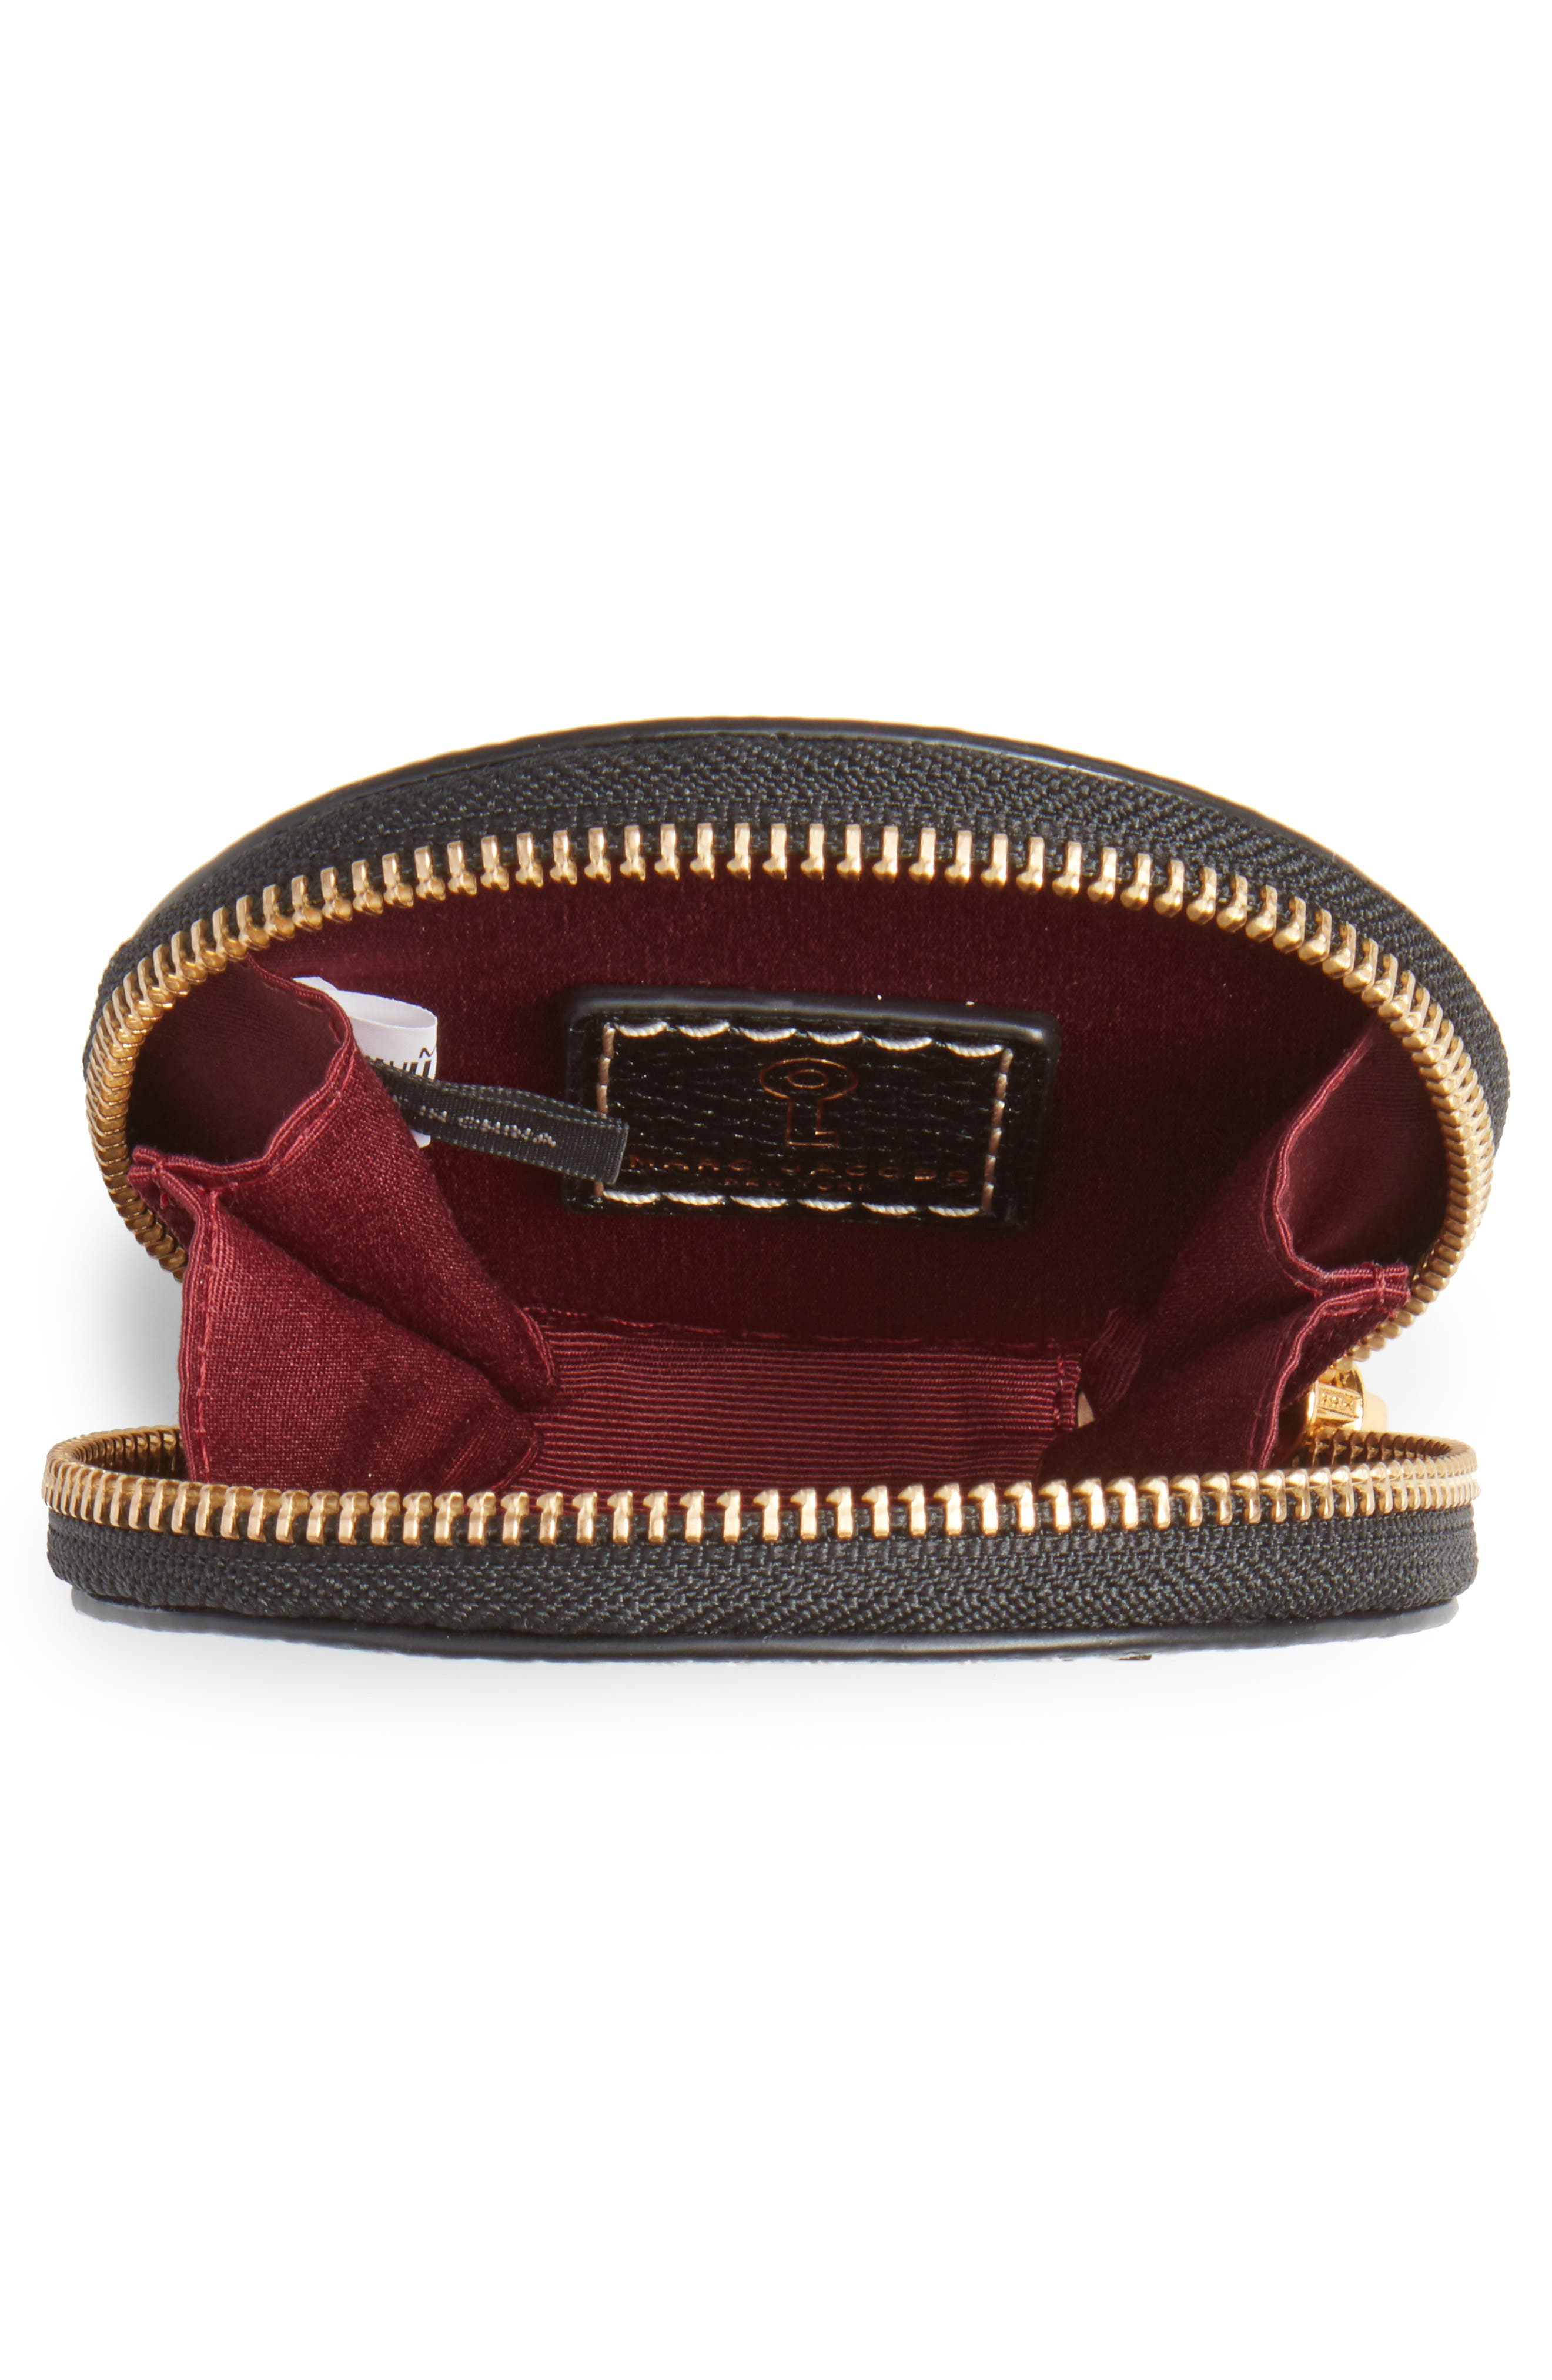 The Grind Leather Coin Pouch,                             Alternate thumbnail 2, color,                             Black